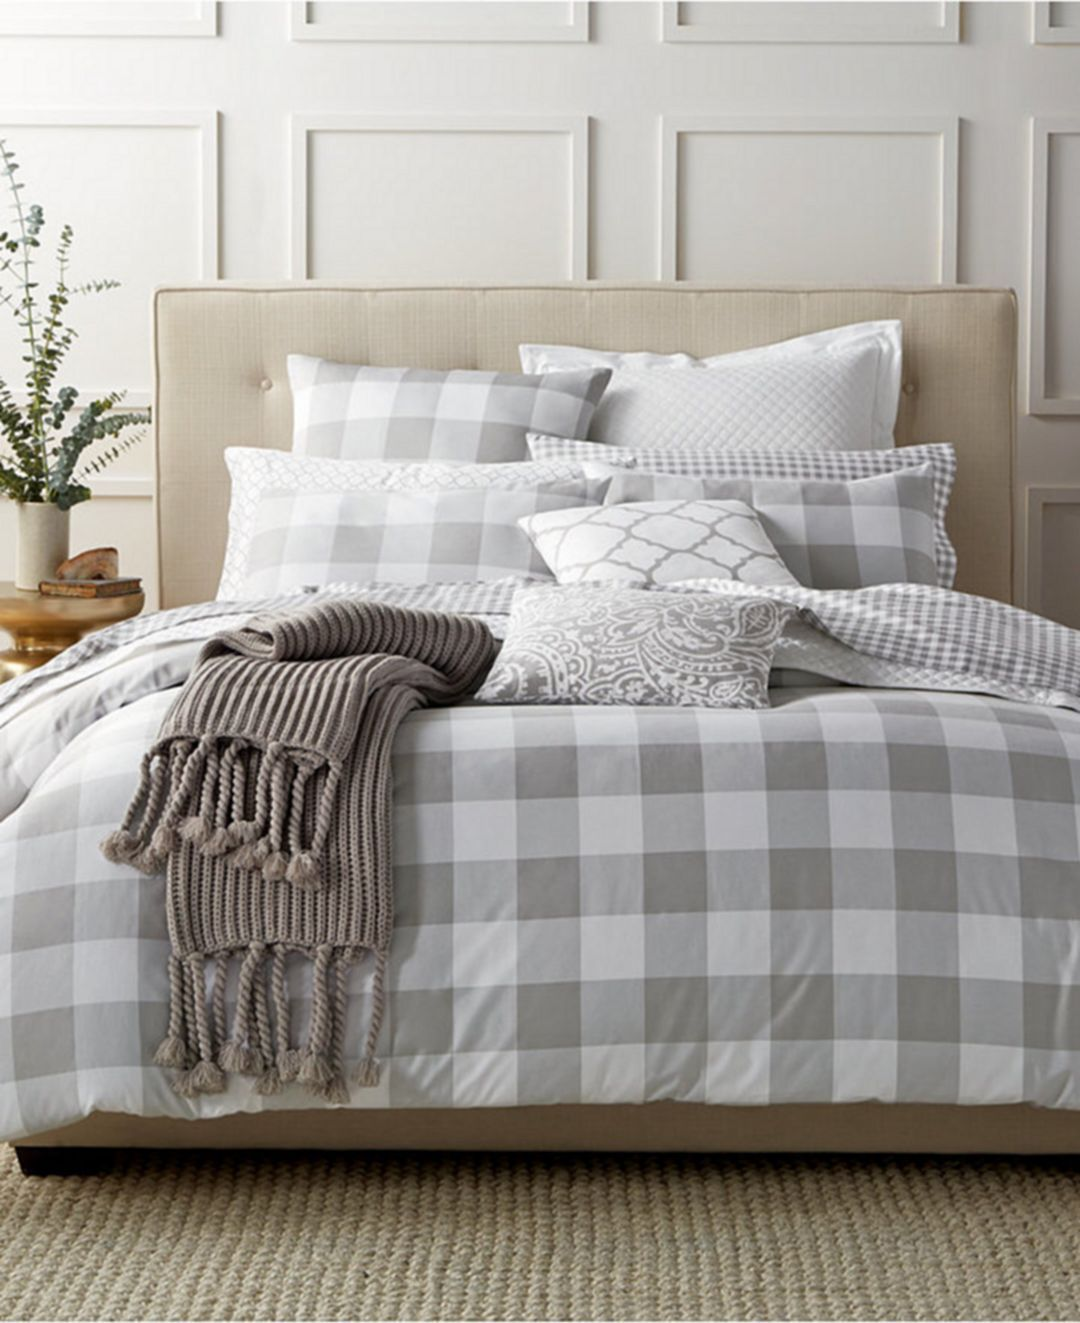 12 Luxury and Cozy Farmhouse Bedroom Ideas You Have to